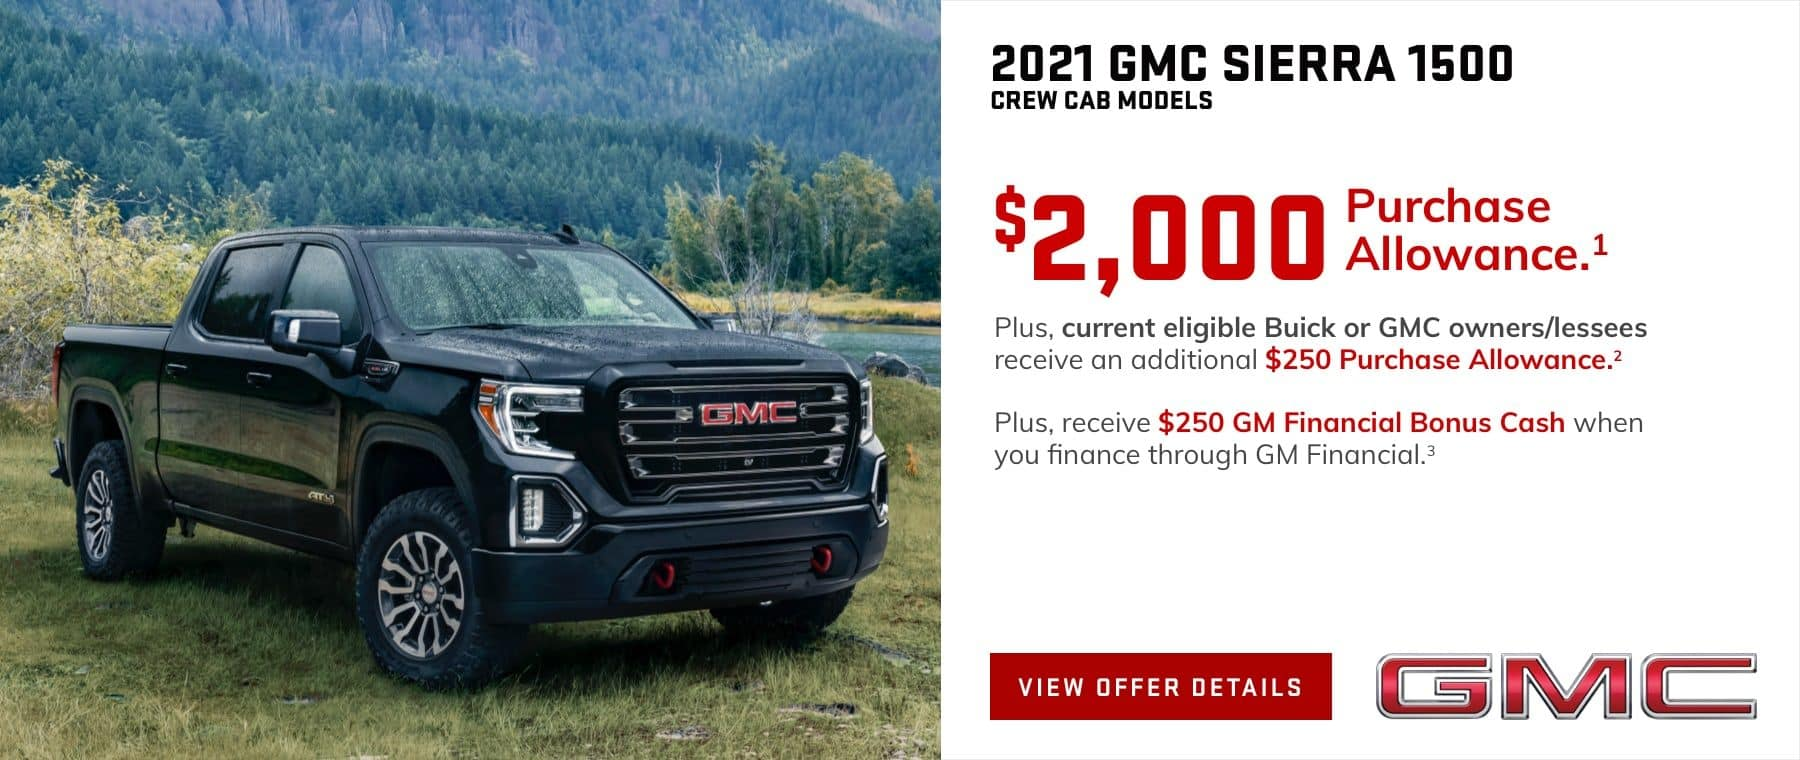 $2,000 Purchase Allowance.1 Plus, current eligible Buick or GMC owners/lessees receive an additional $250 Purchase Allowance.2 Plus, receive $250 GM Financial Bonus Cash when you finance through GM Financial.3